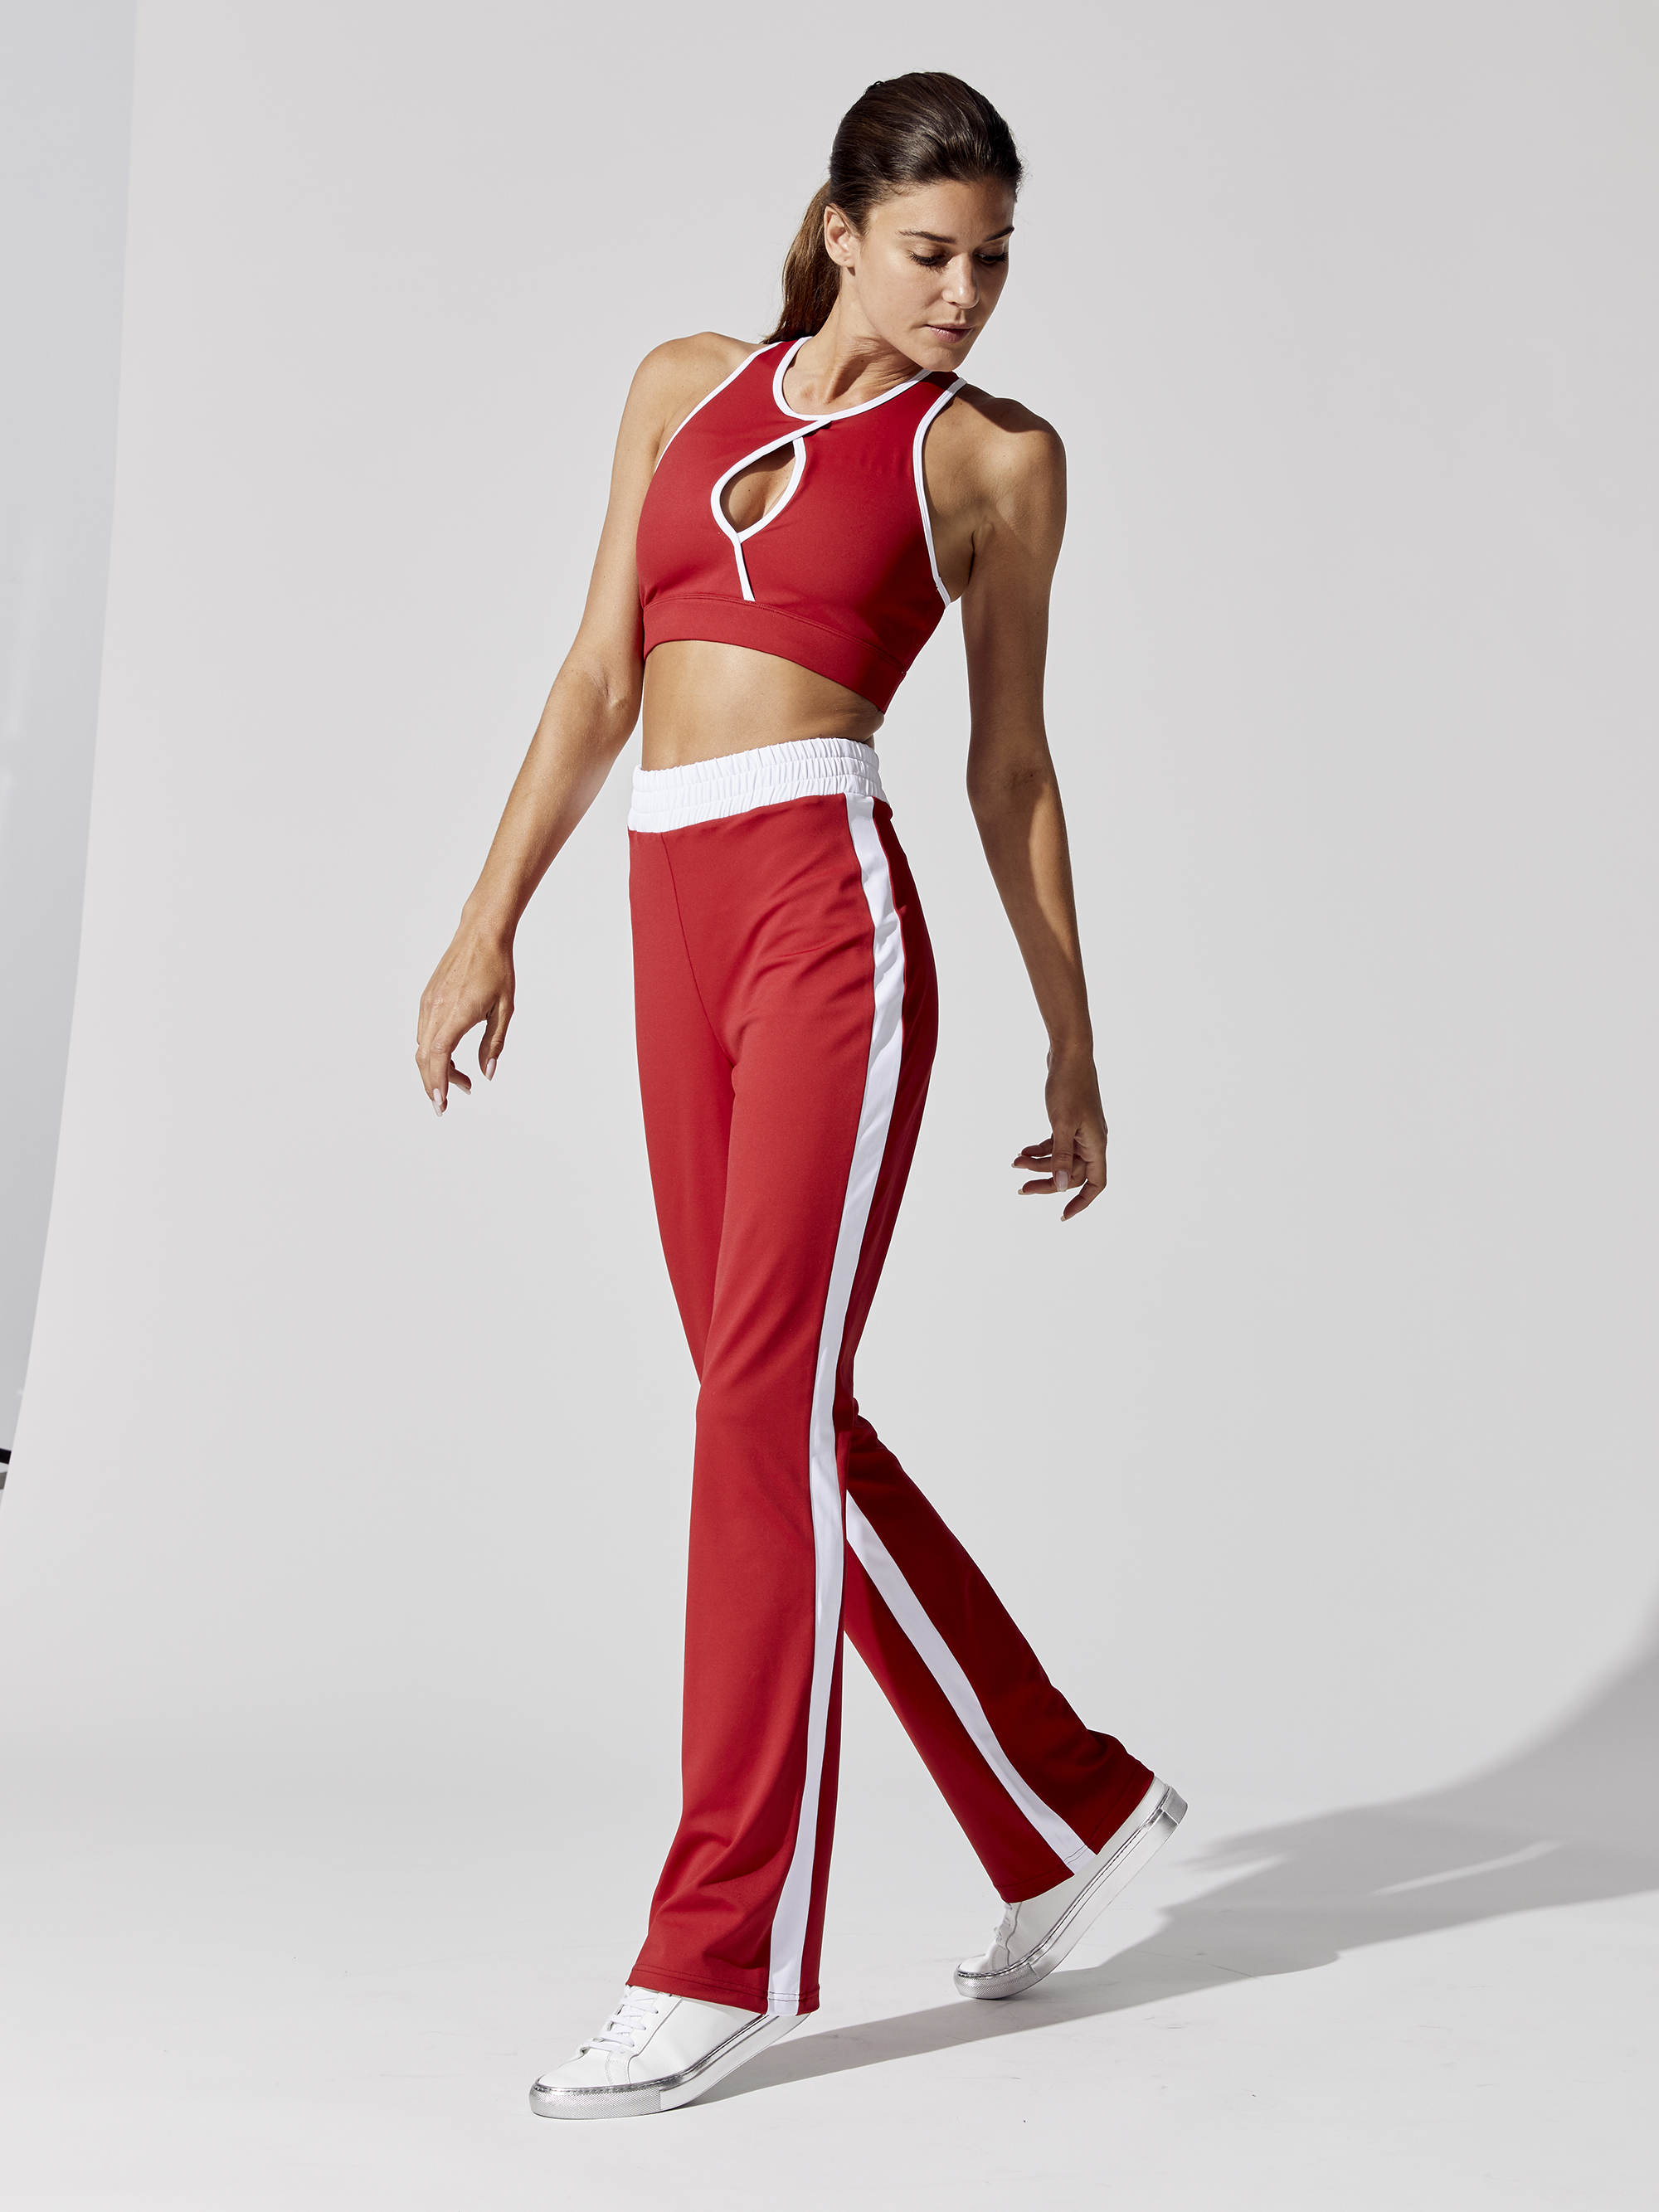 CARBON38-ATHLETIC-MESH-TROUSERS-BOTTOMS-CERISE-1-B.jpg